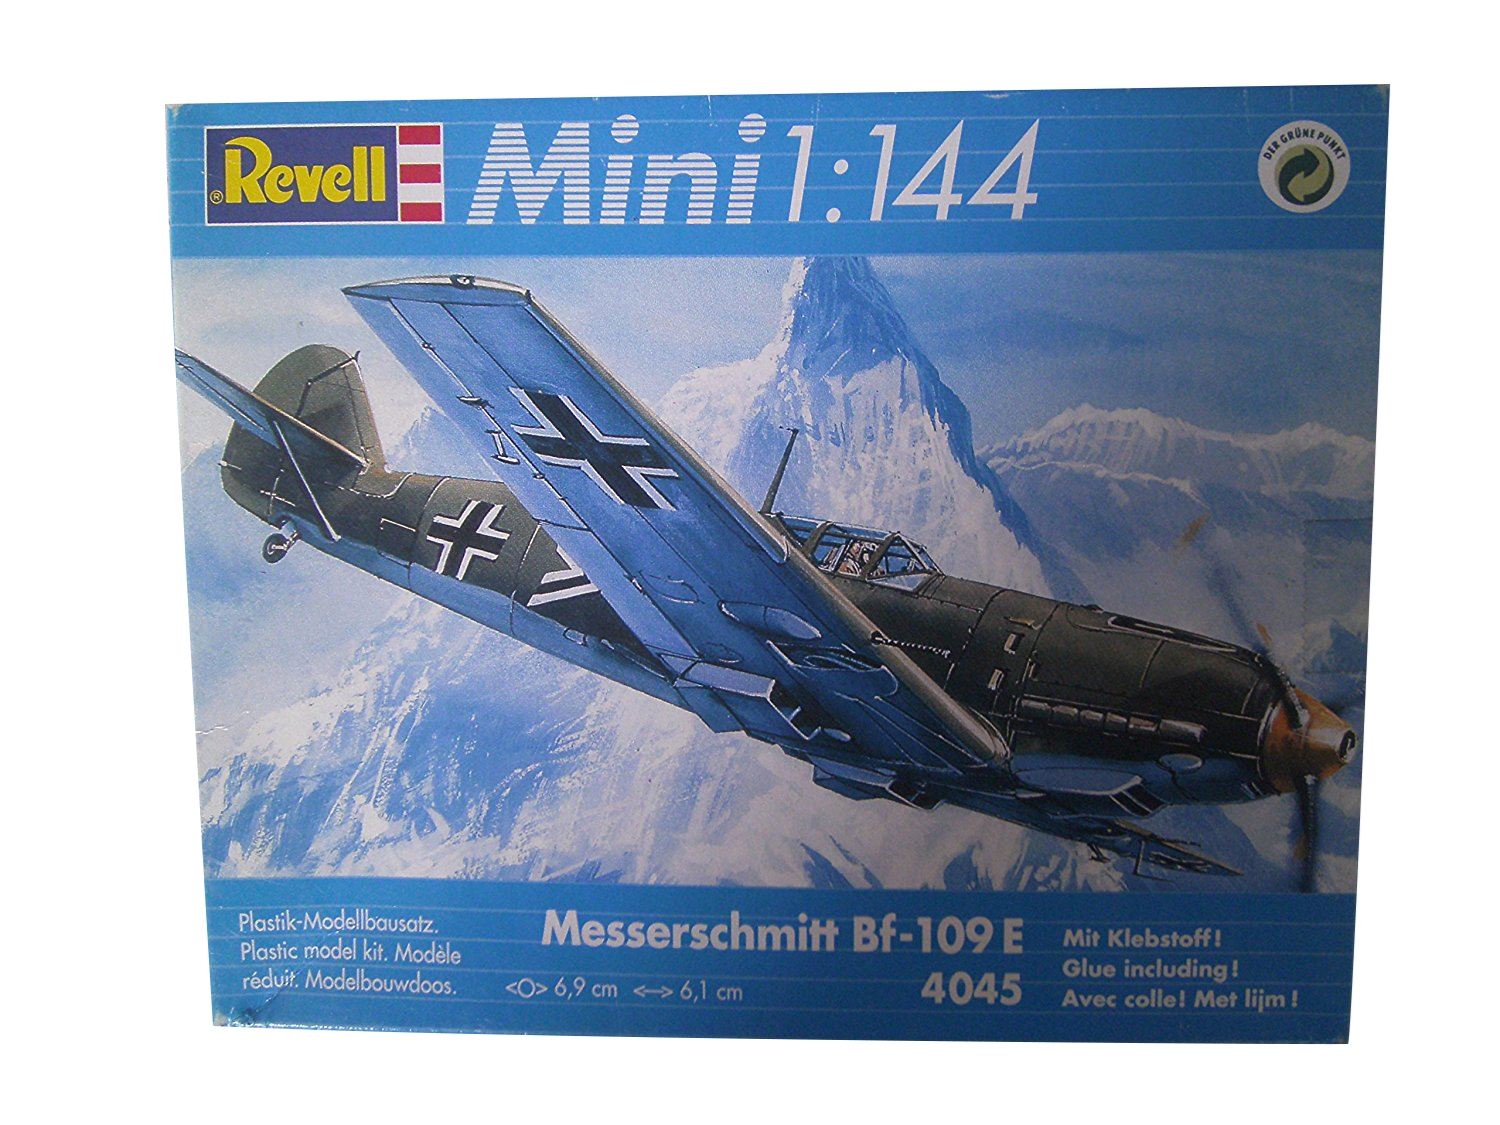 Messerschmitt Bf-109E (Mini 1/144 Scale)